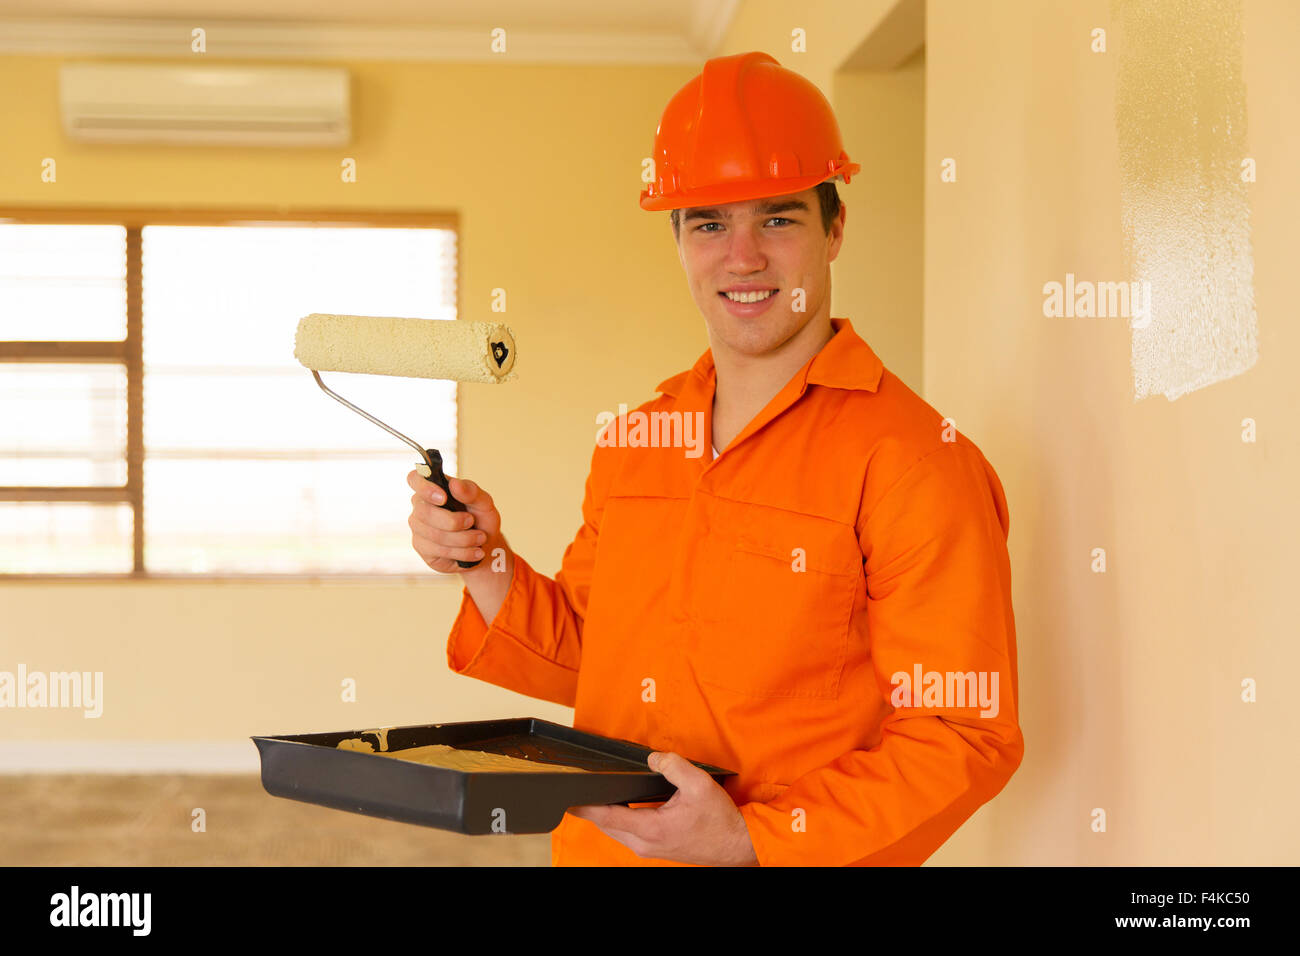 young contractor painting inside the house - Stock Image